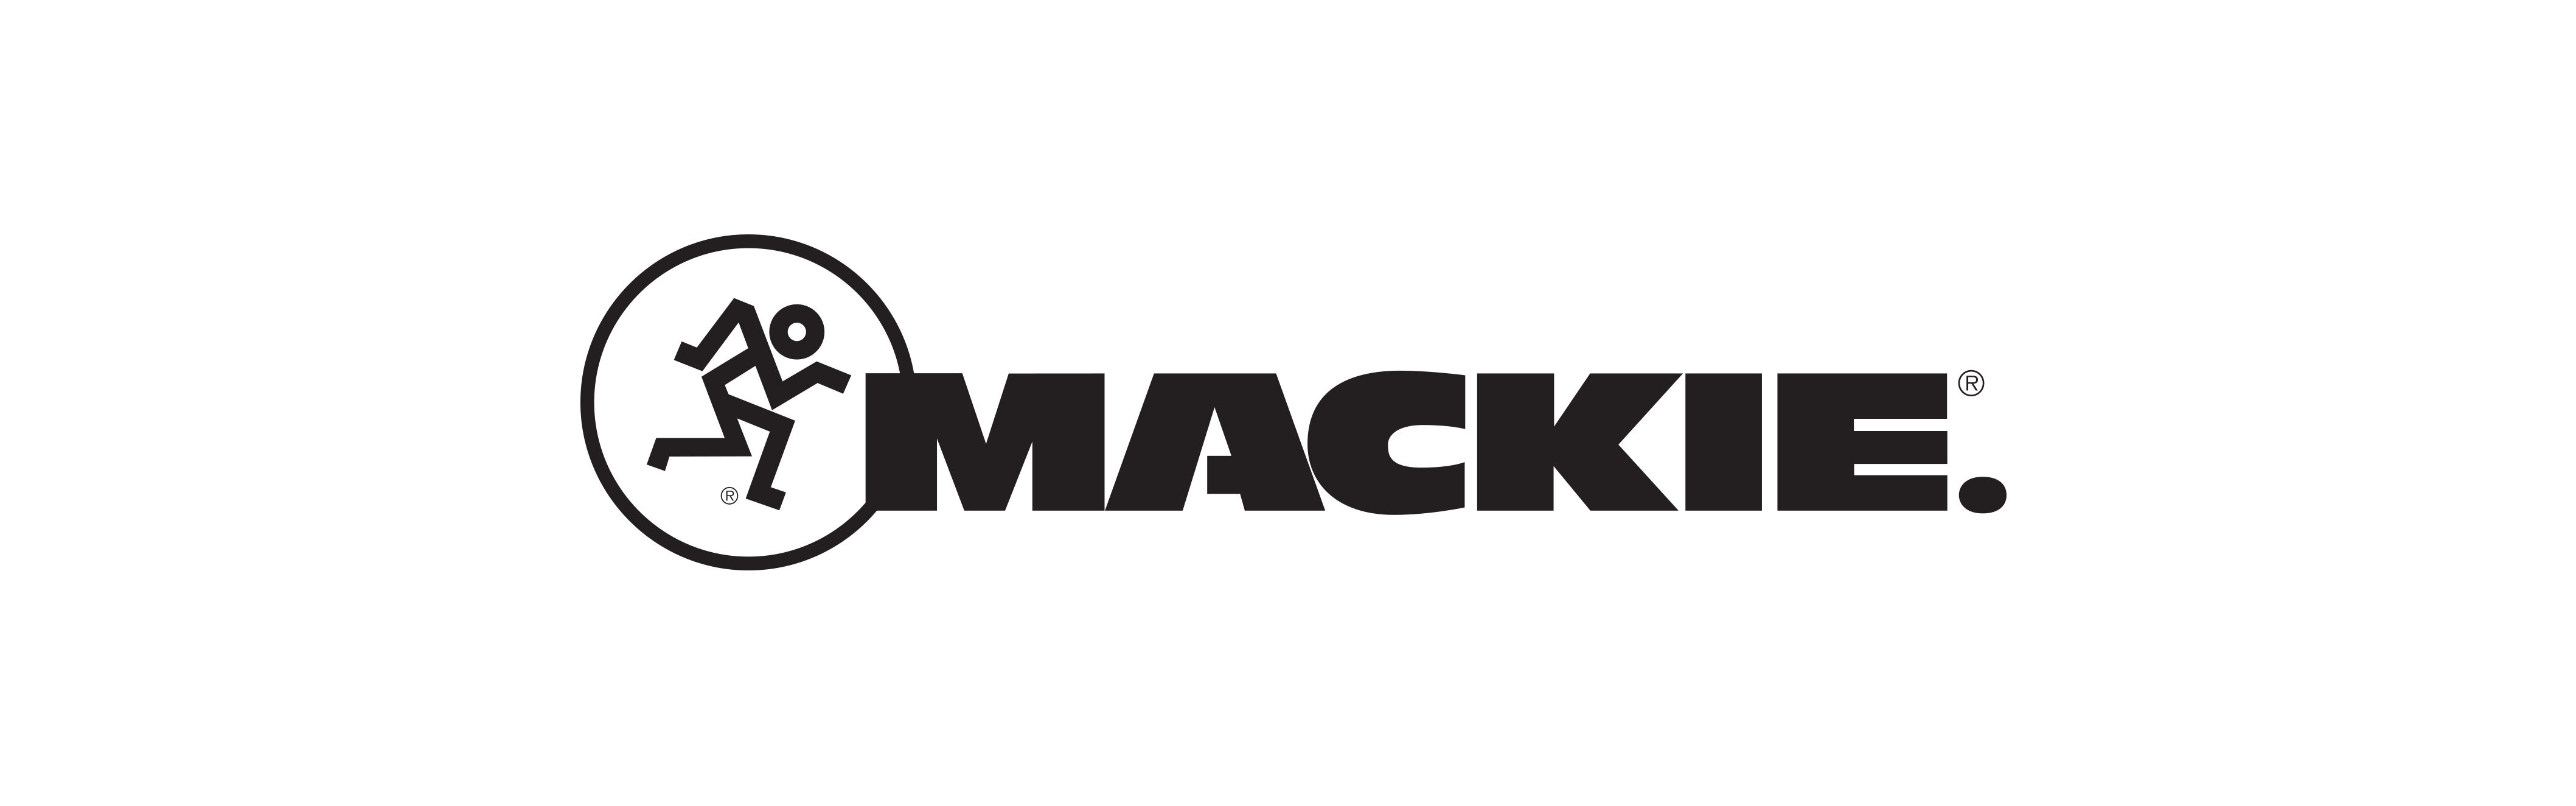 Mackie speakers